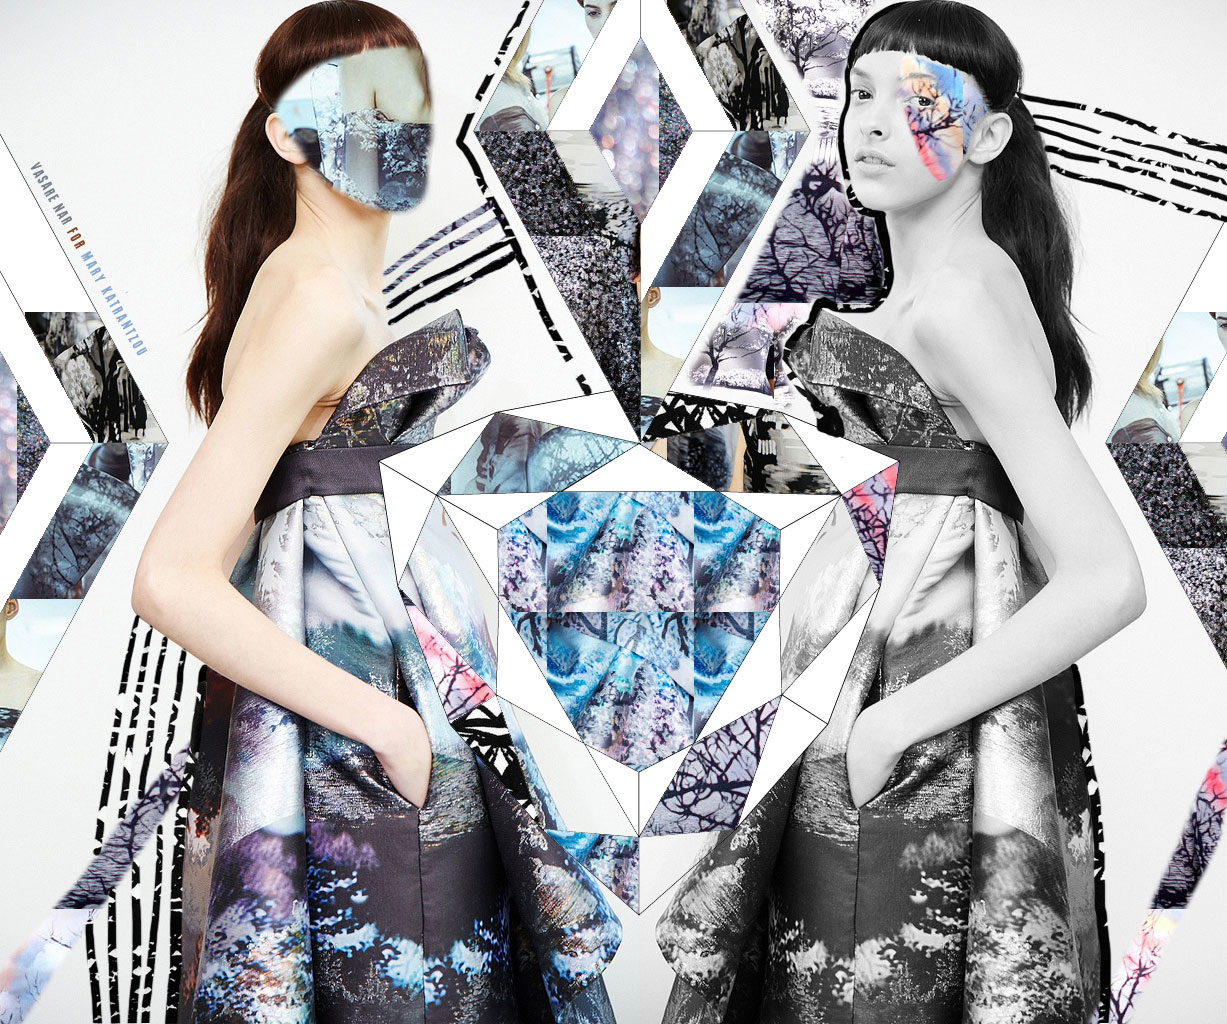 Mary Katrantzou AW13 Collage | Vasare Nar Art Fashion u0026 Design blog